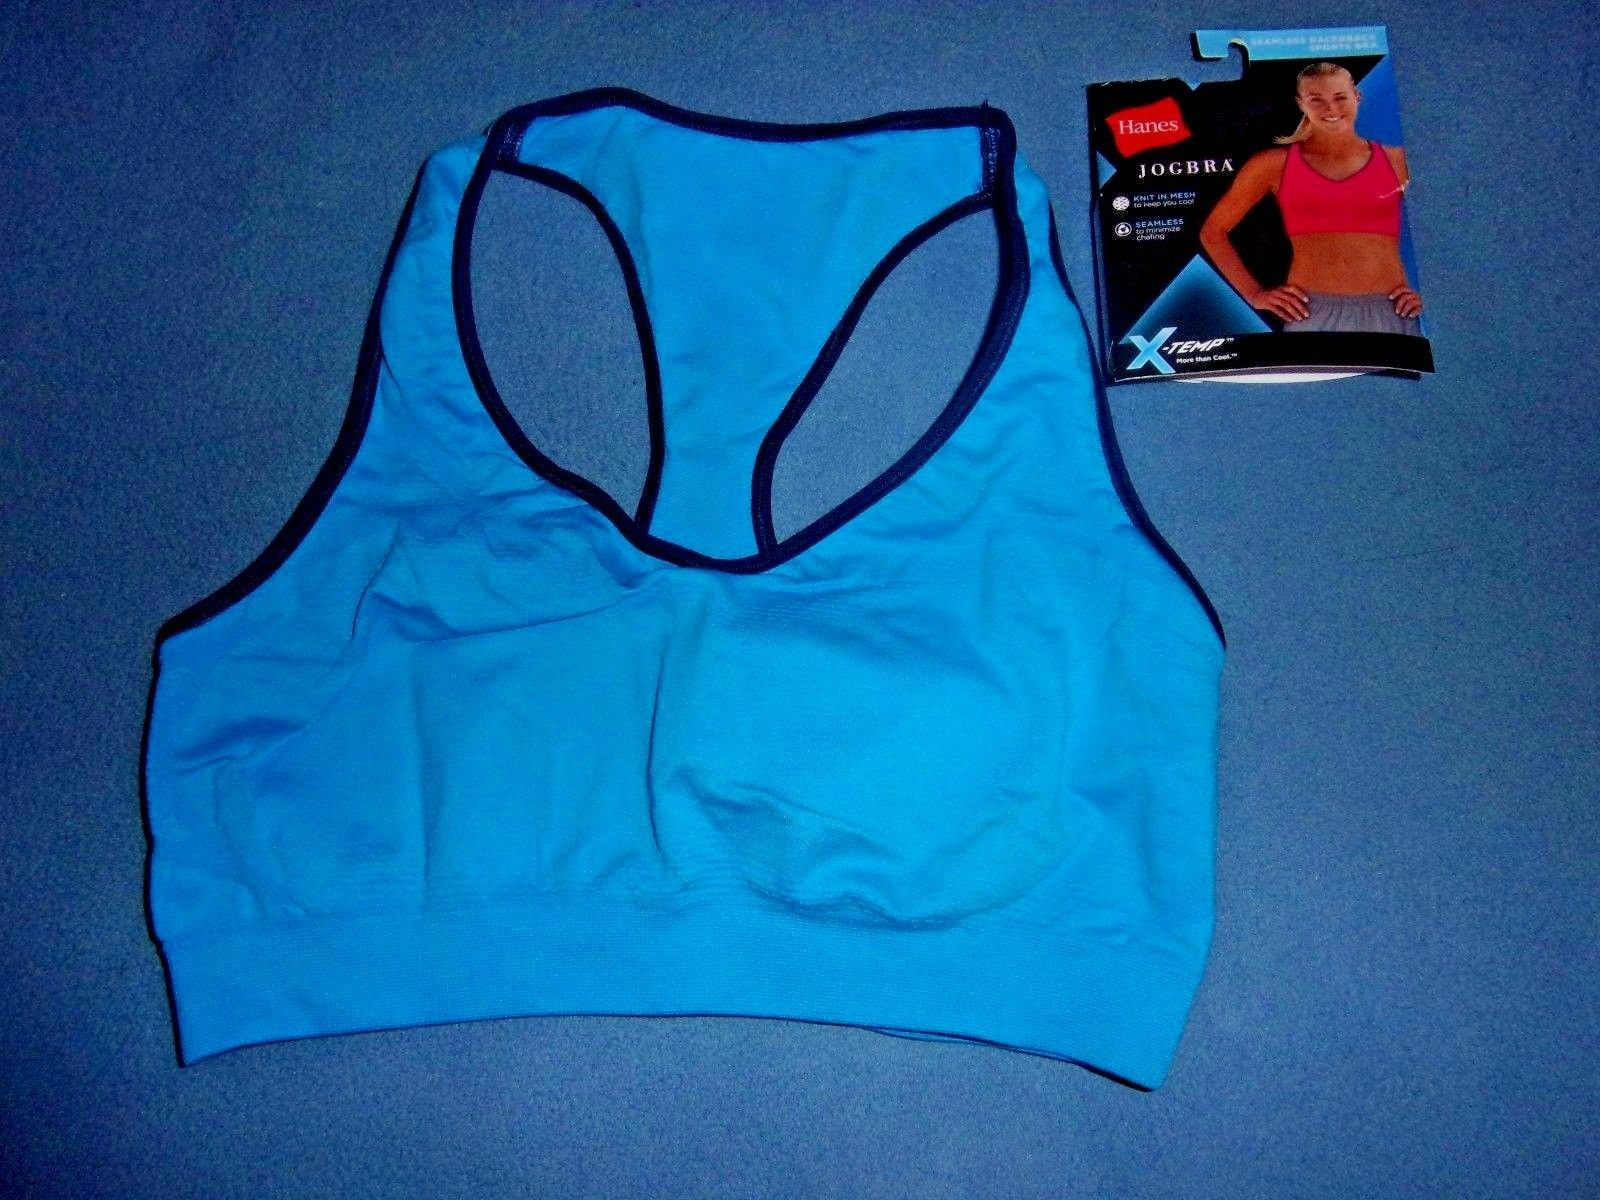 beb4e4bf0a31d Size S NIP Hanes Blue X-Temp Jog Bra and 21 similar items